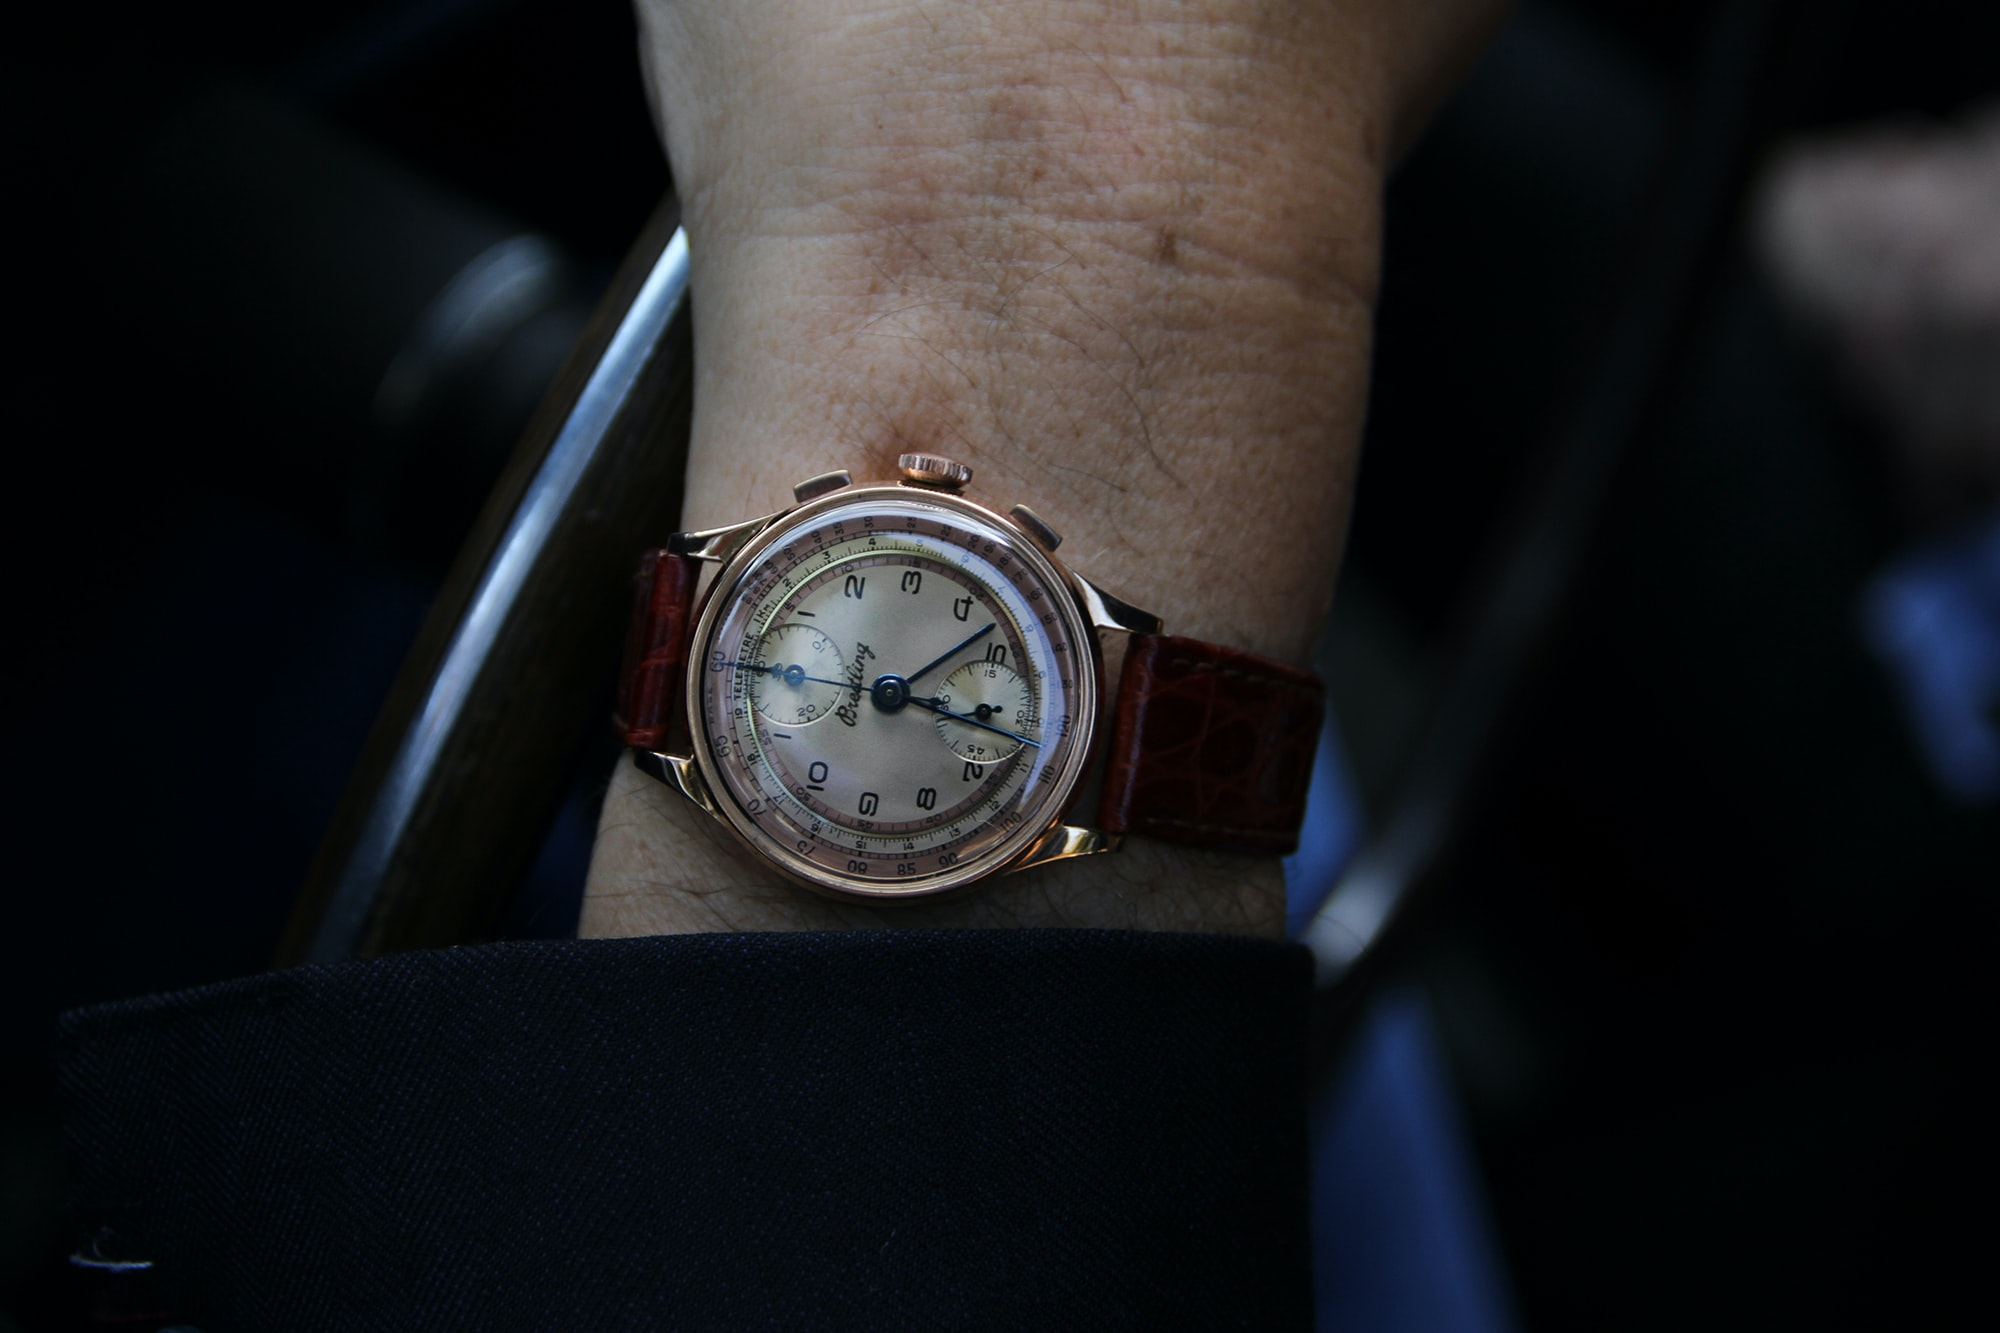 1940s Breitling chronograph with Venus calibre 170. Photo Report: Watch And Car Spotting At The 2016 Concorso d'Eleganza Villa d'Este With A. Lange & Söhne Photo Report: Watch And Car Spotting At The 2016 Concorso d'Eleganza Villa d'Este With A. Lange & Söhne 1